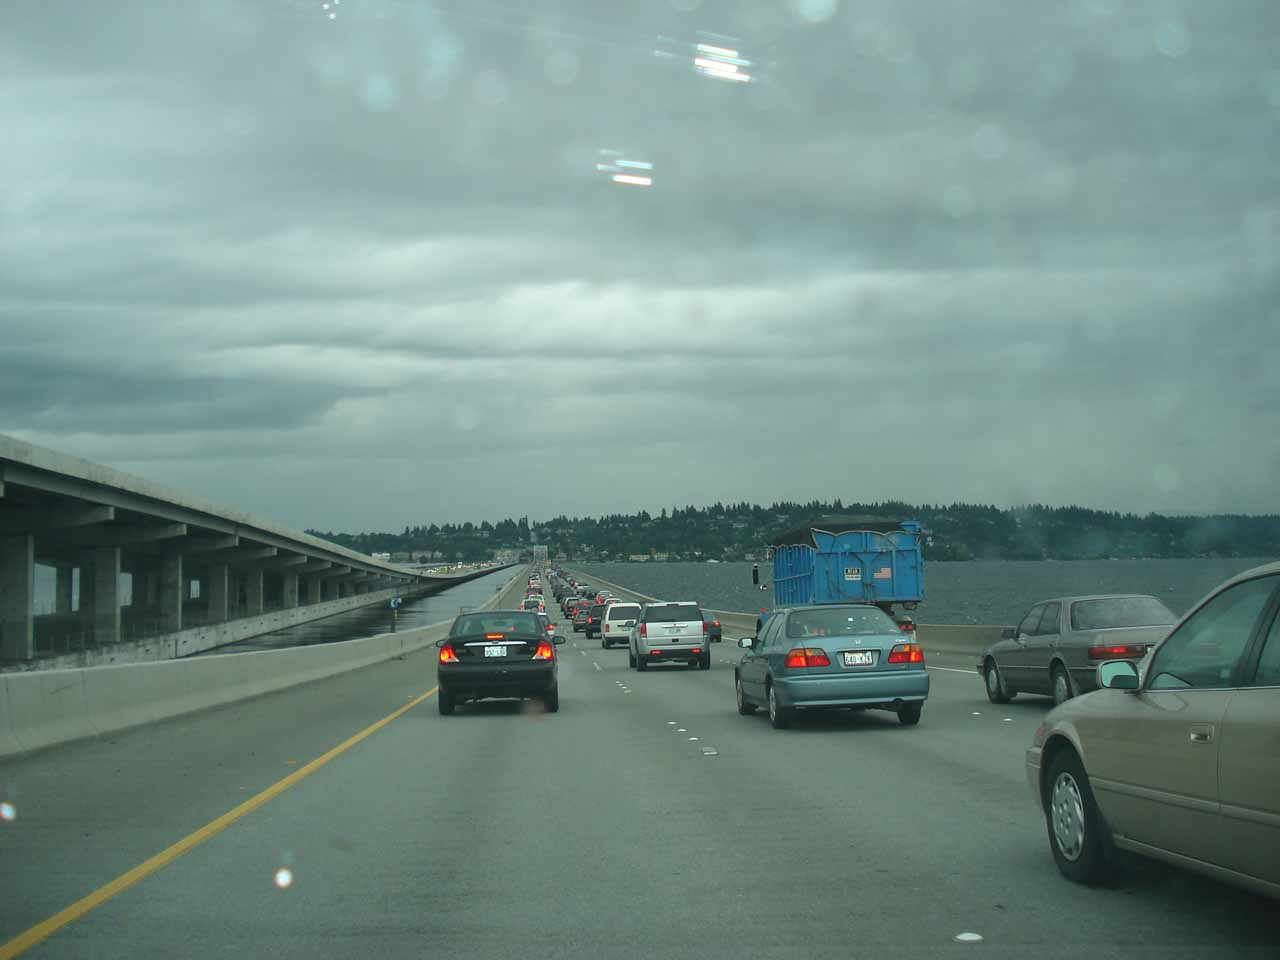 Traffic on the I-90 as we were approaching the suburb of Issaquah from Seattle